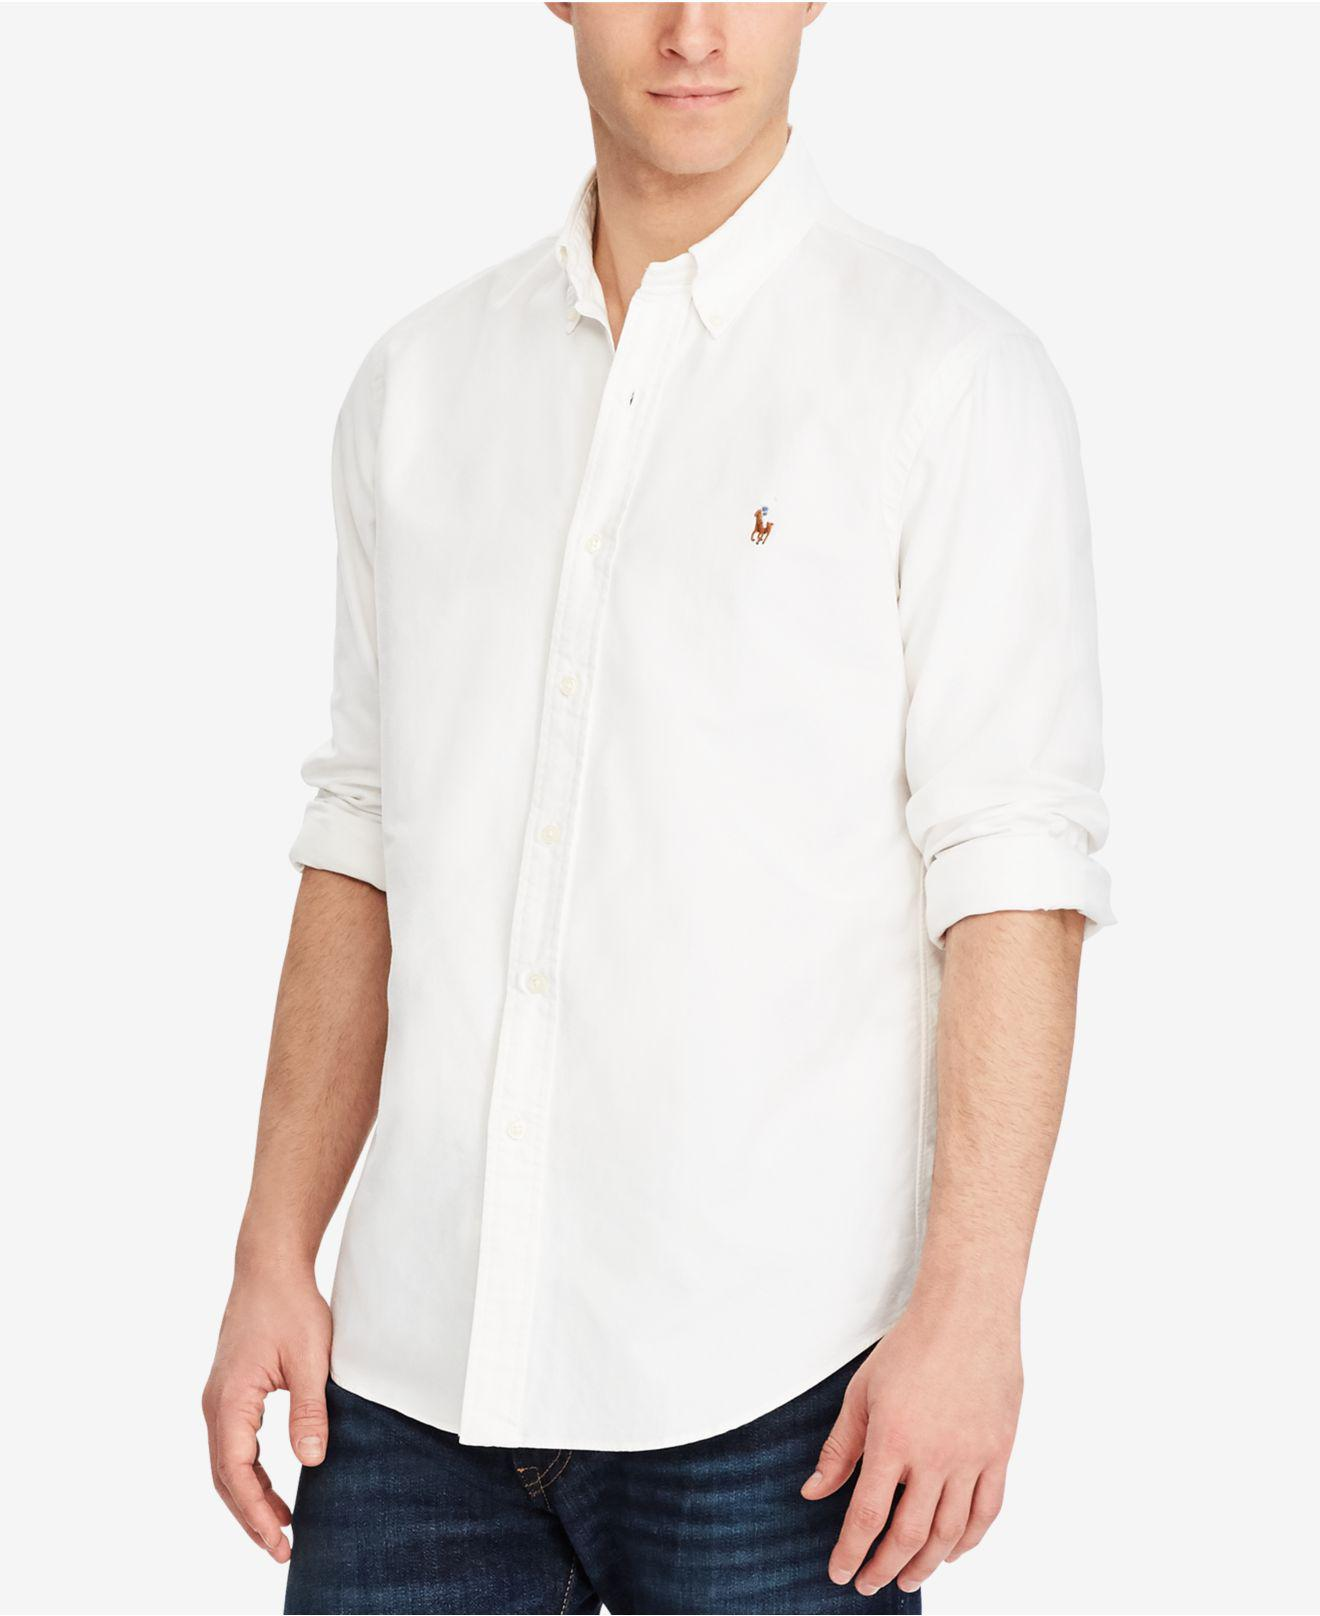 3a8a43ba7 Lyst - Polo Ralph Lauren Solid Oxford Shirt in White for Men